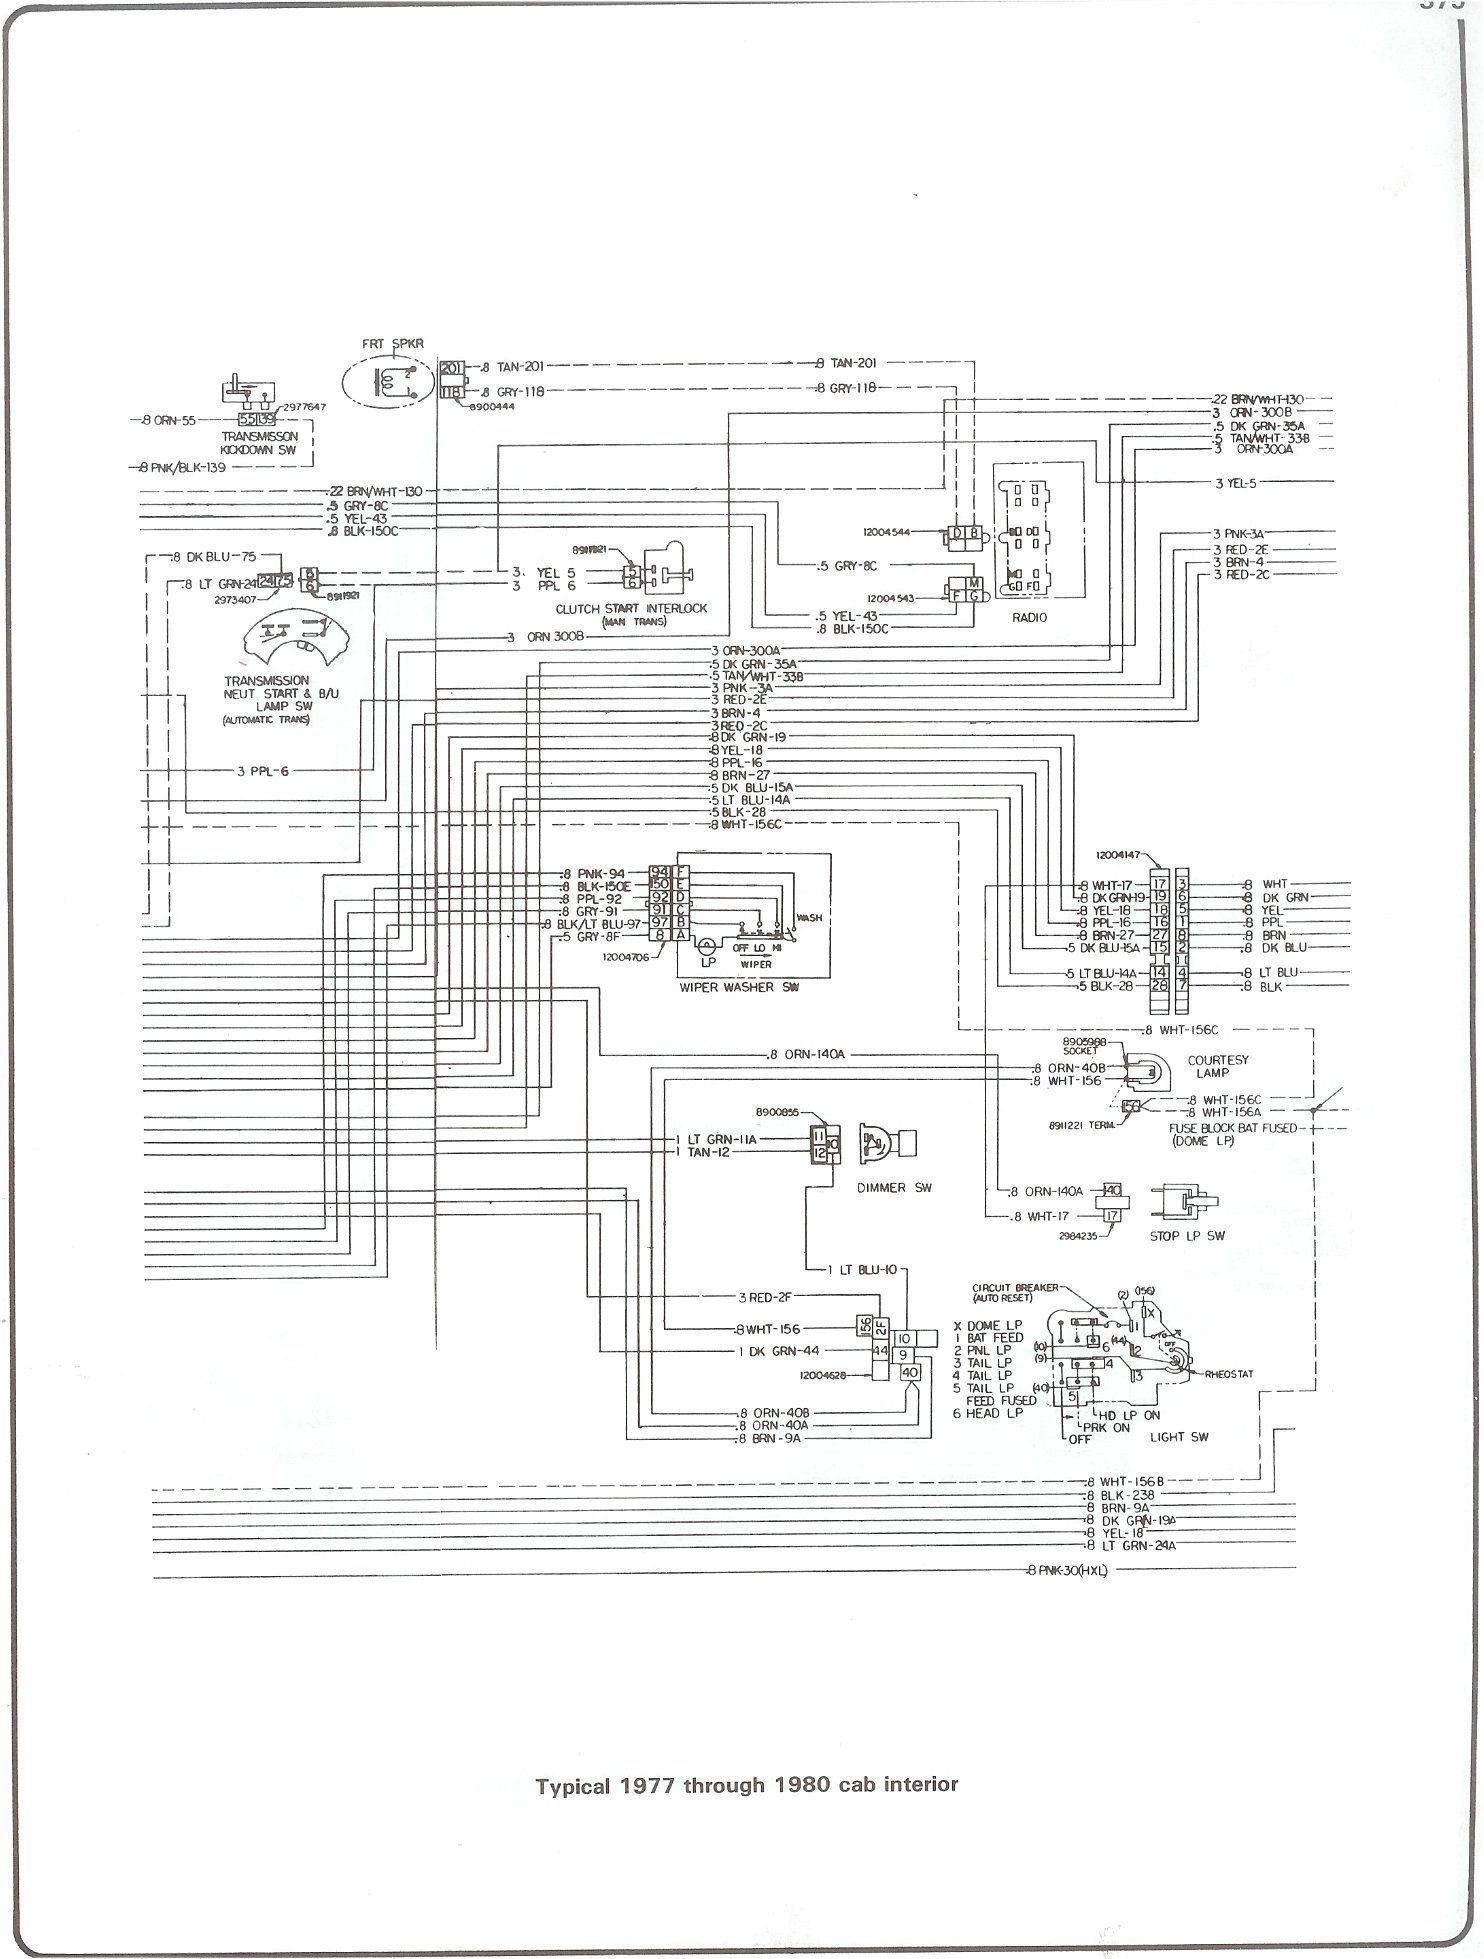 Complete 73 87 Wiring Diagrams 2004 GMC 2500HD Sierra Wiring Diagrams 78  Gmc Wiring Diagram